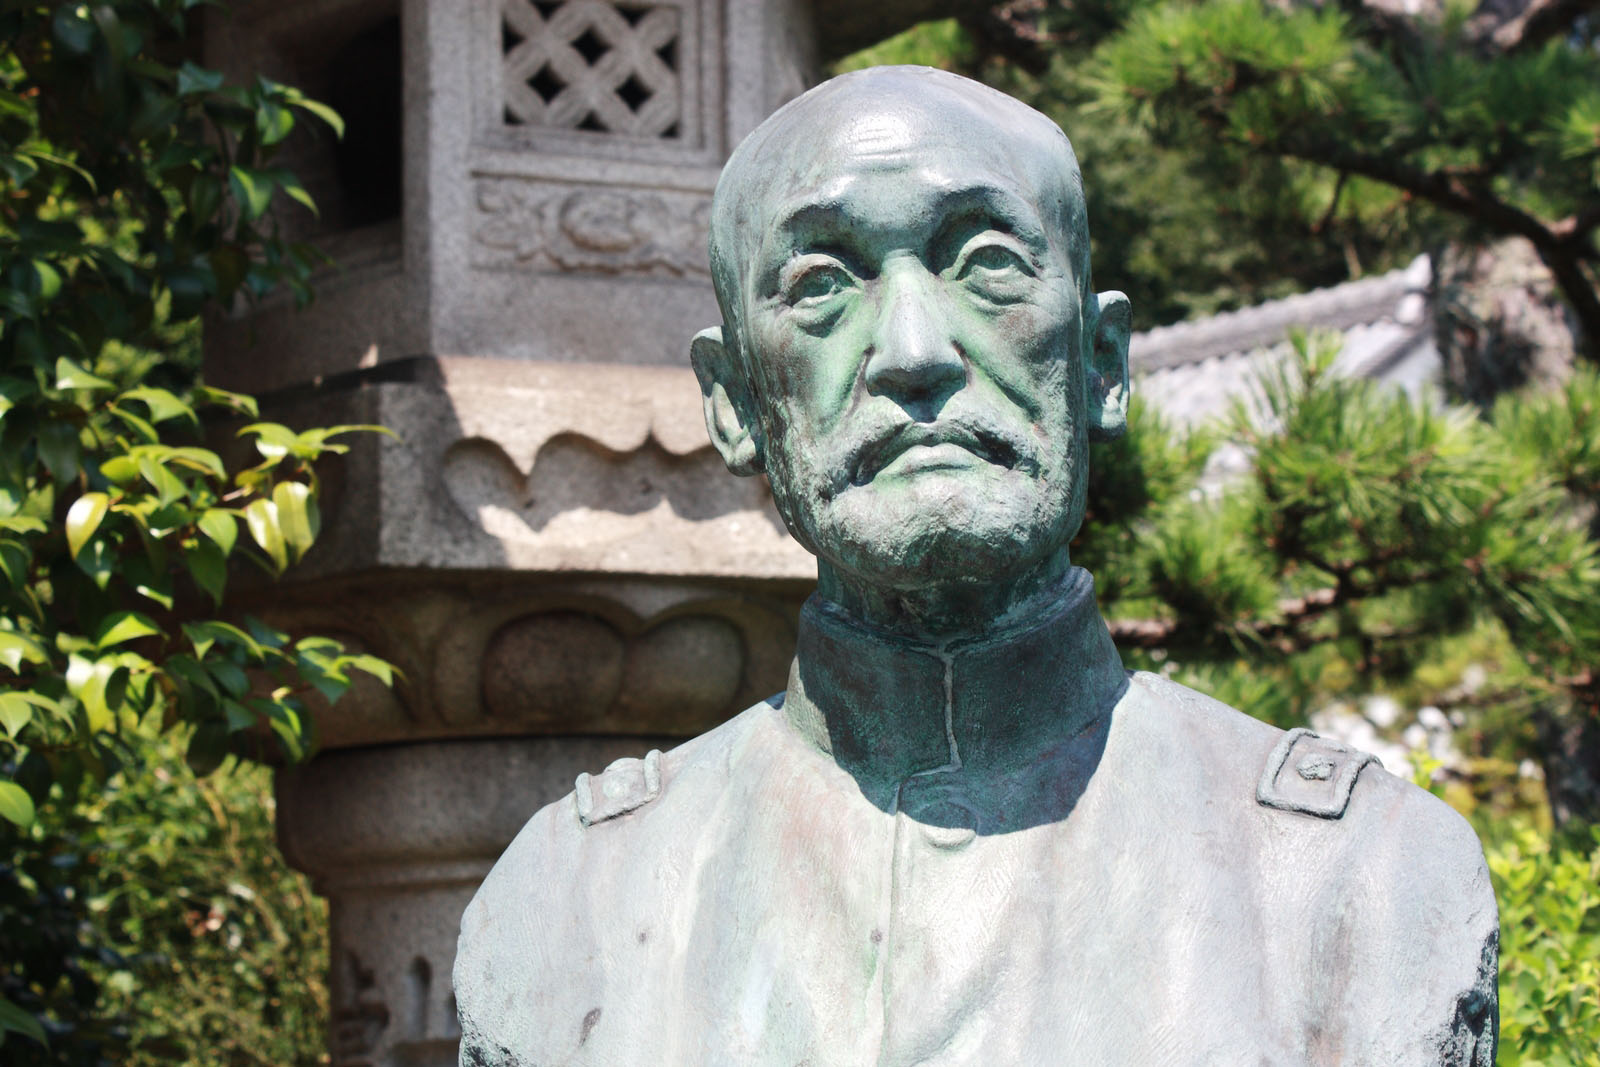 Past glories: A bust of Count Nogi Mareske, a general who committed suicide with his wife as a gesture of Imperial loyalty after Emperor Meiji's funeral in 1912. | ALON ADIKA PHOTO